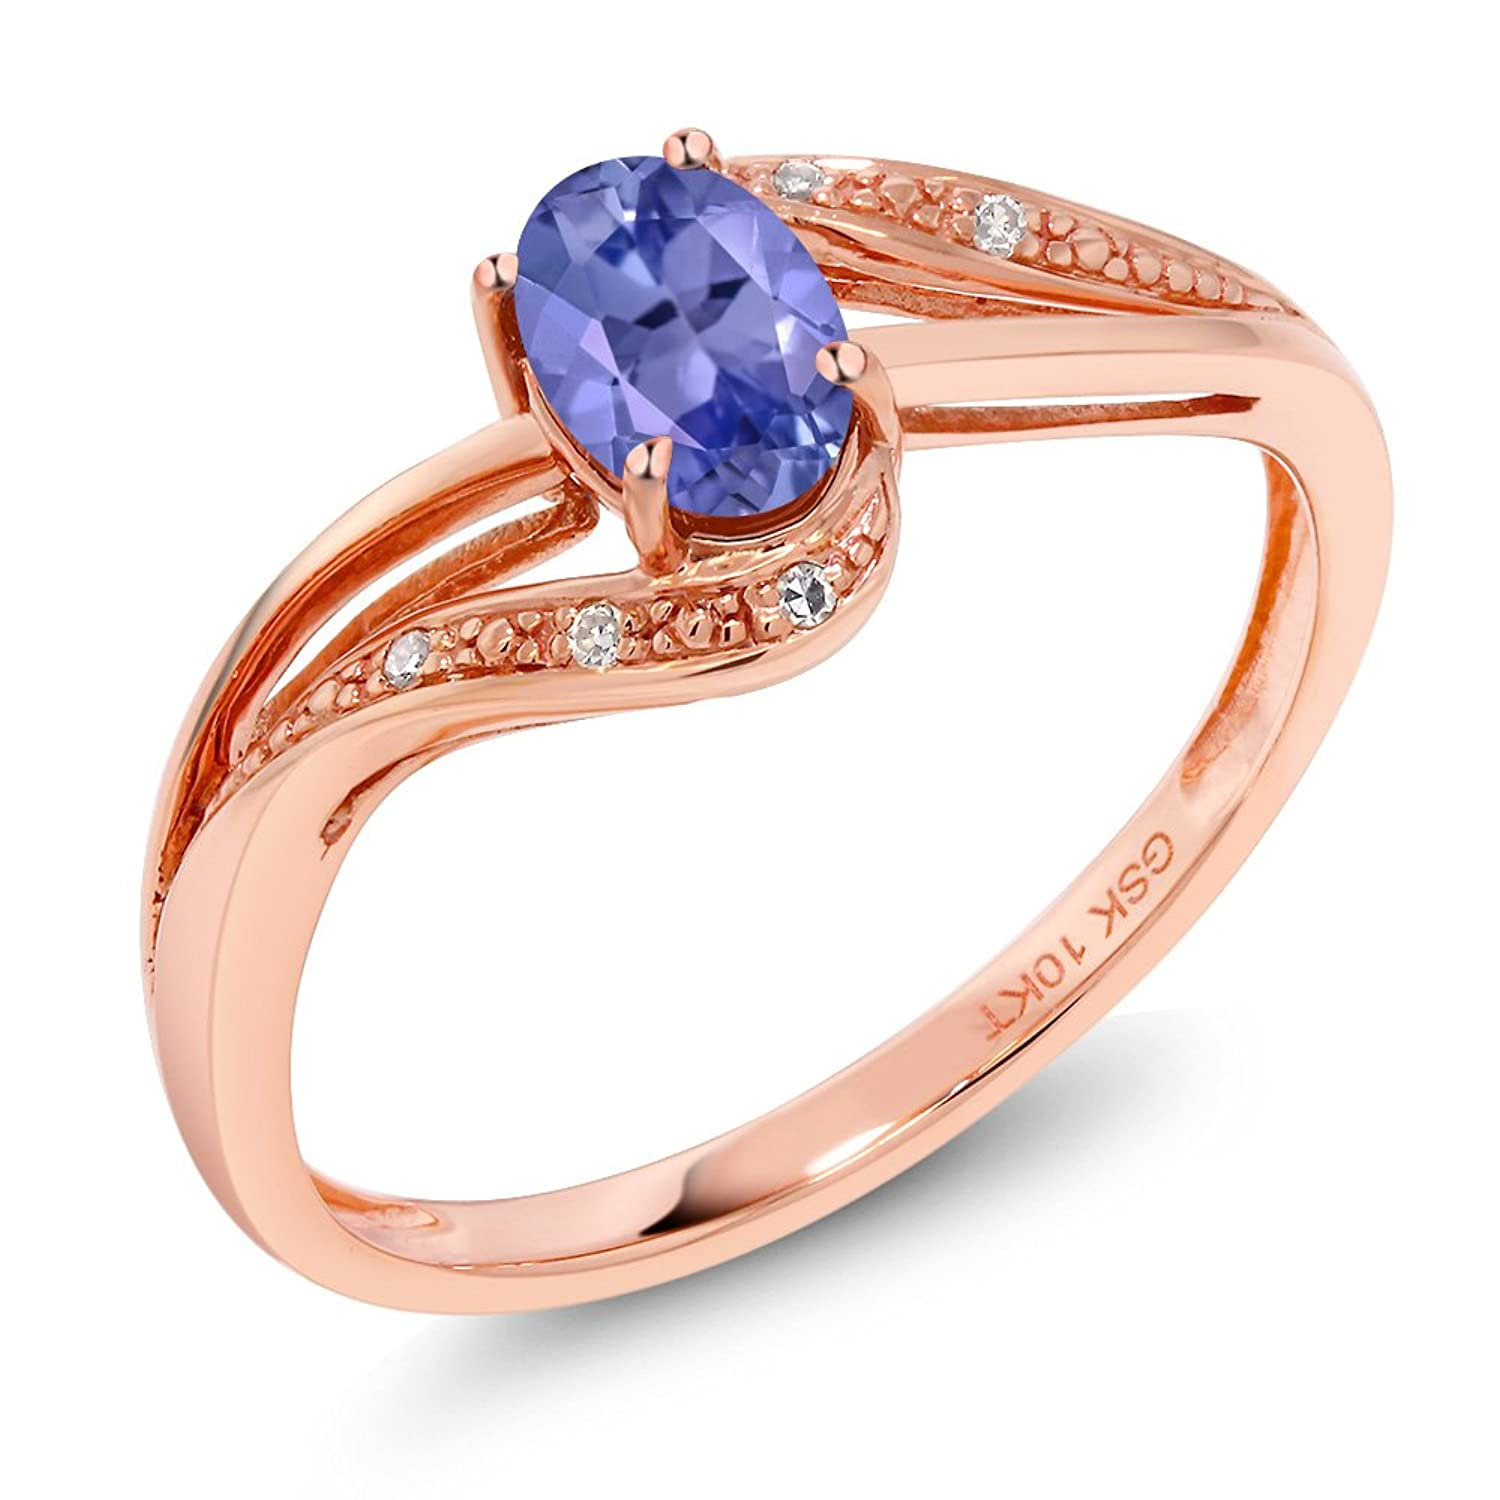 10K Rose Gold 0.49 Ct Blue Tanzanite and Diamond Engagement Ring (Available in size 5, 6, 7, 8, 9)